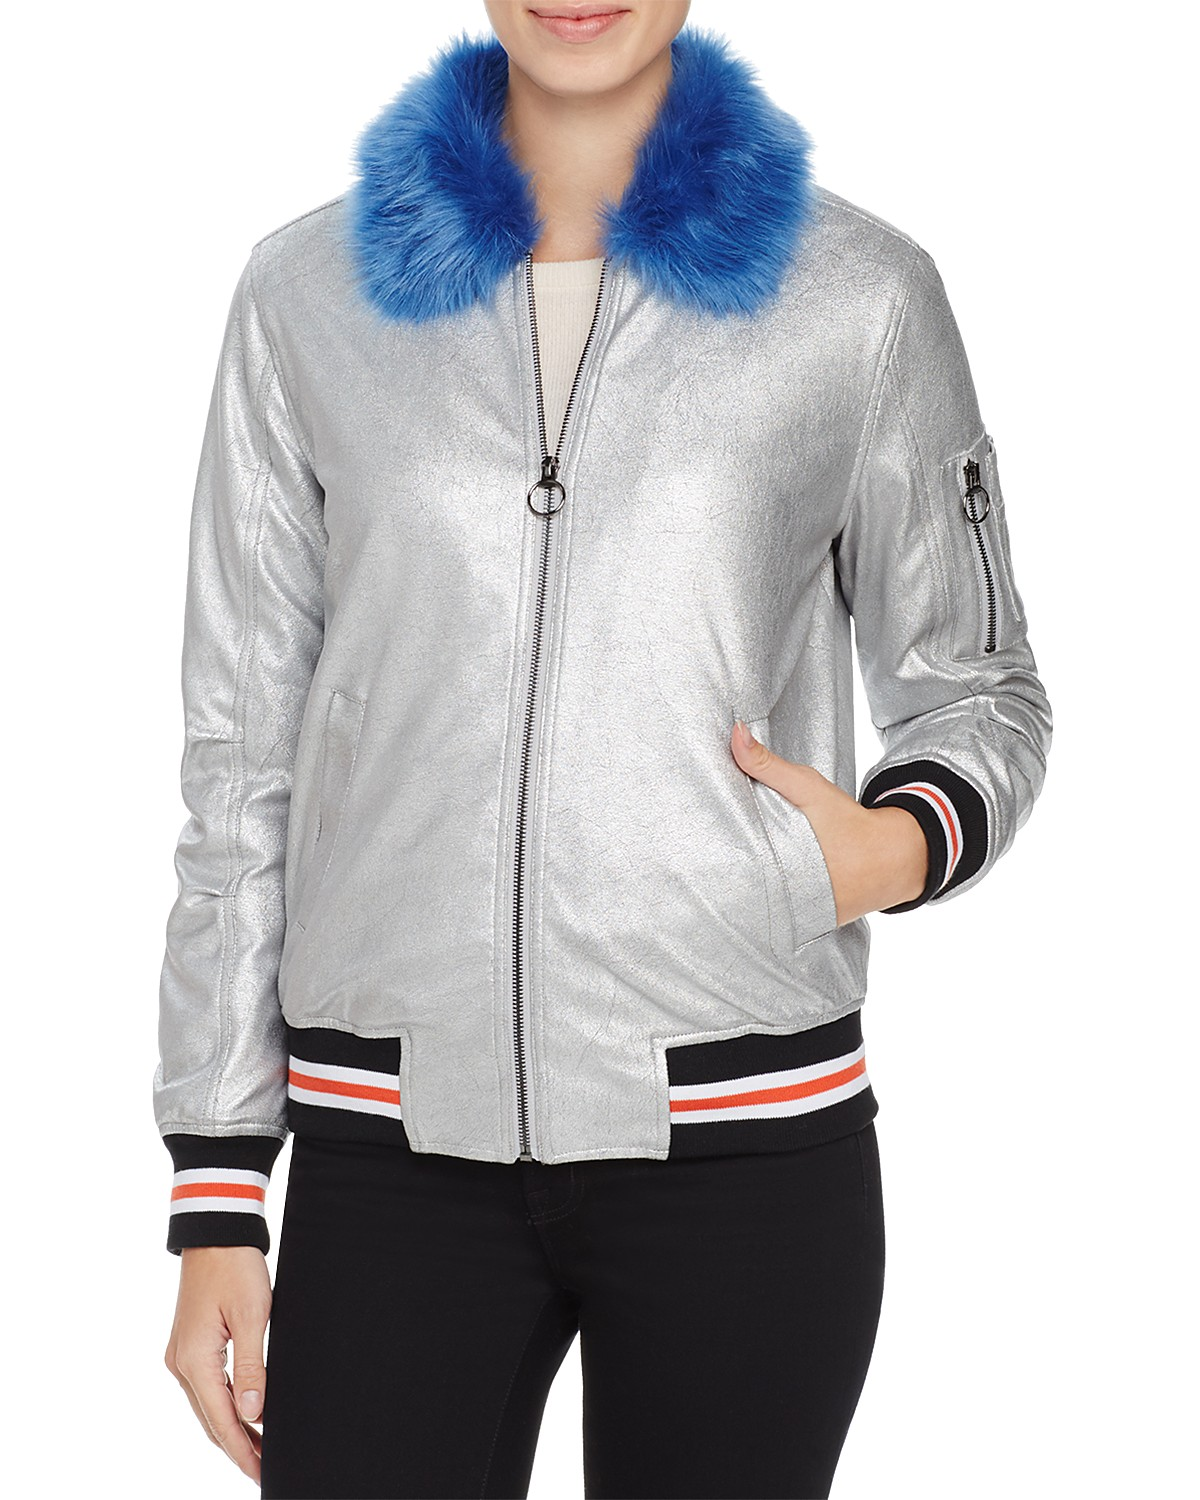 LOUISE PARIS Metallic Puffer Bomber Jacket (orig. $168) NOW $84